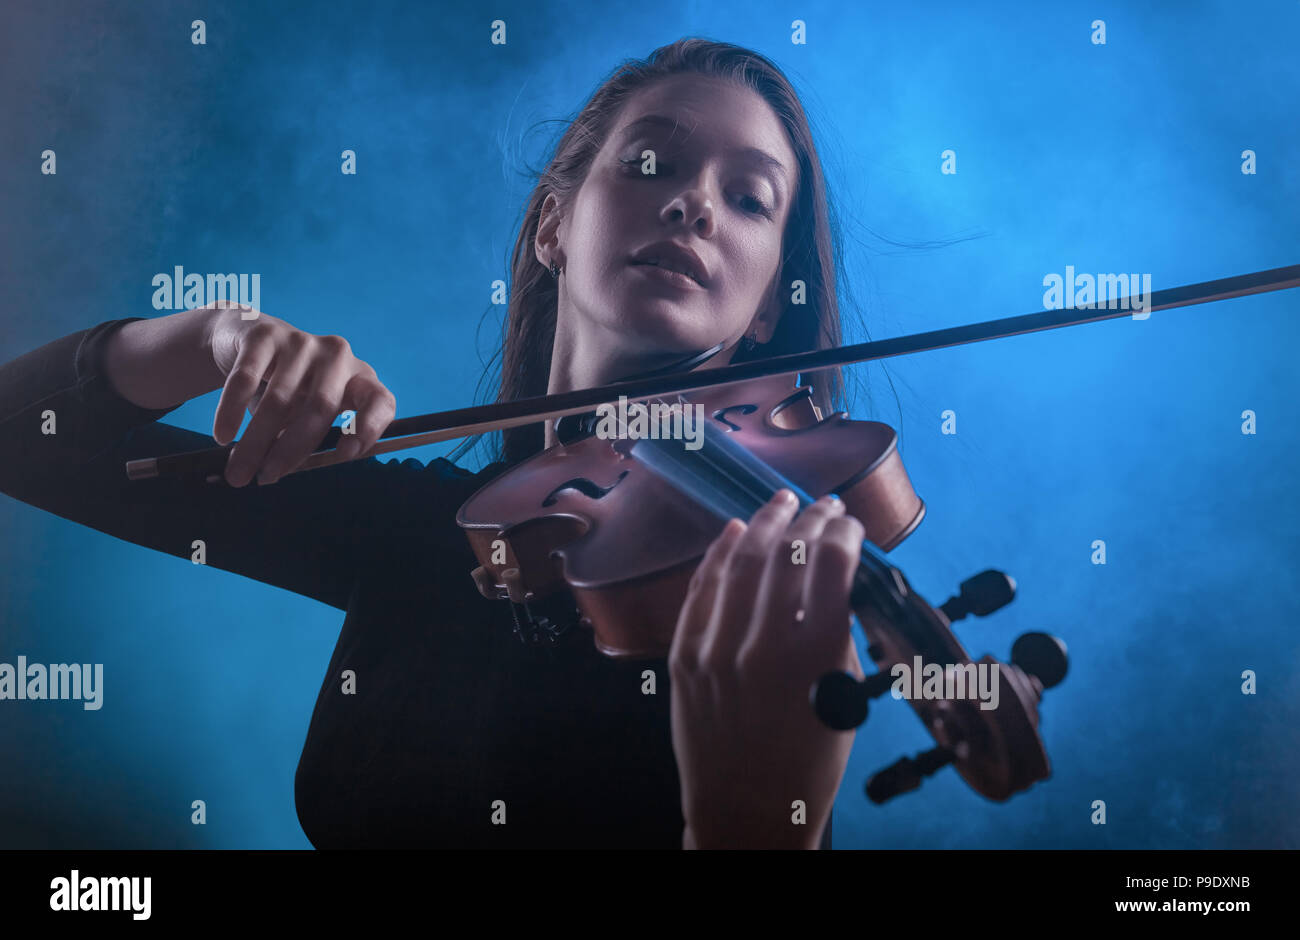 Beautiful young woman playing the violin against a dark background - Stock Image